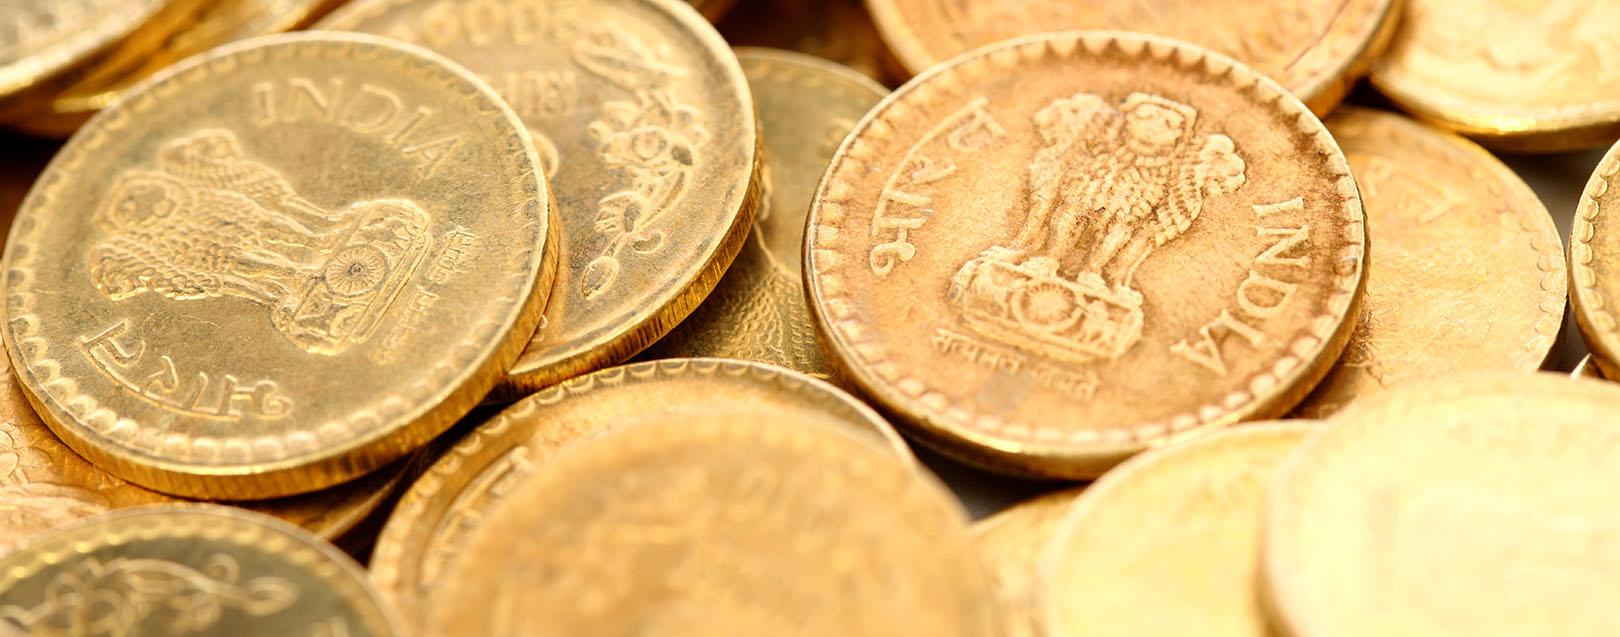 MMTC to partner with SBI to sell Indian Gold Coin